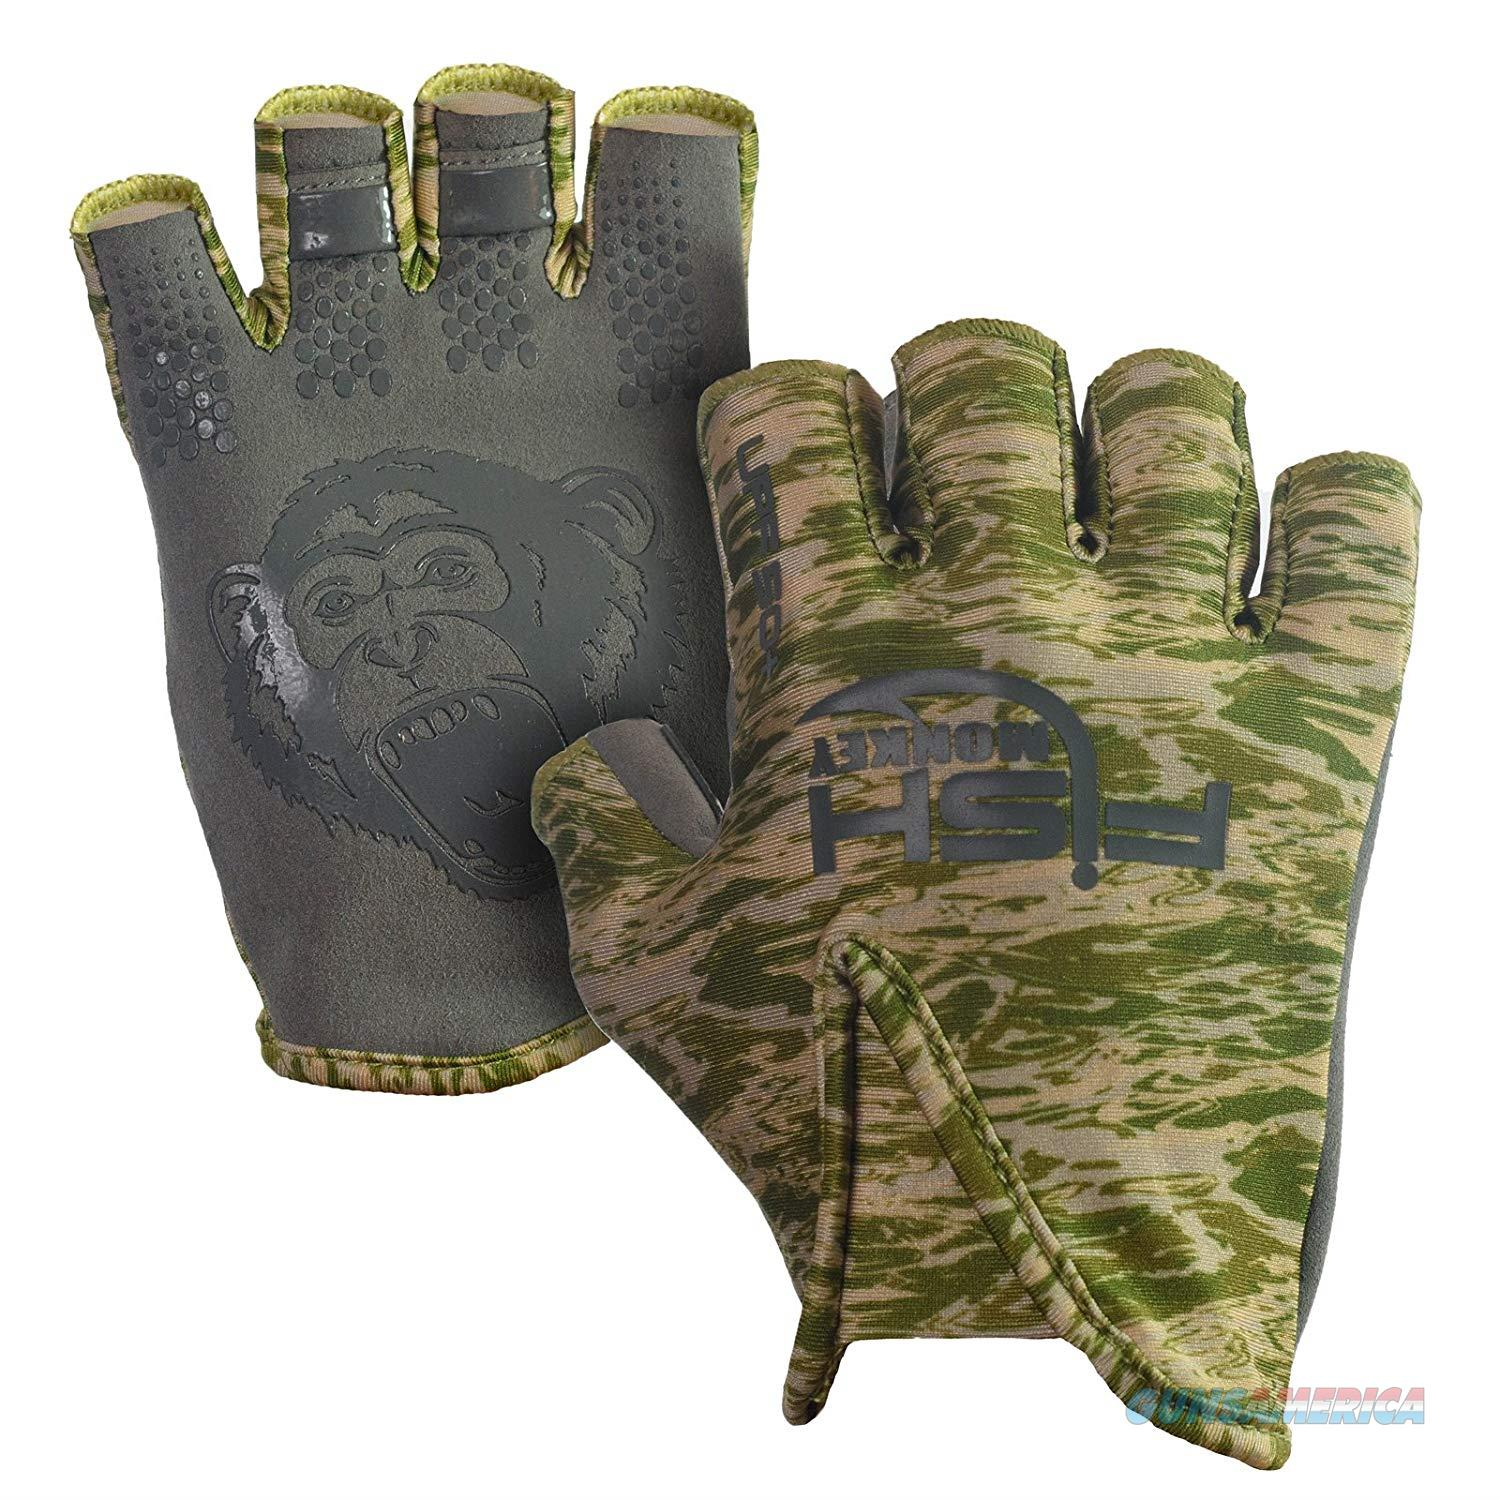 Fish Monkey Stubby Guide Glove Green Small  Non-Guns > Hunting Clothing and Equipment > Clothing > Gloves